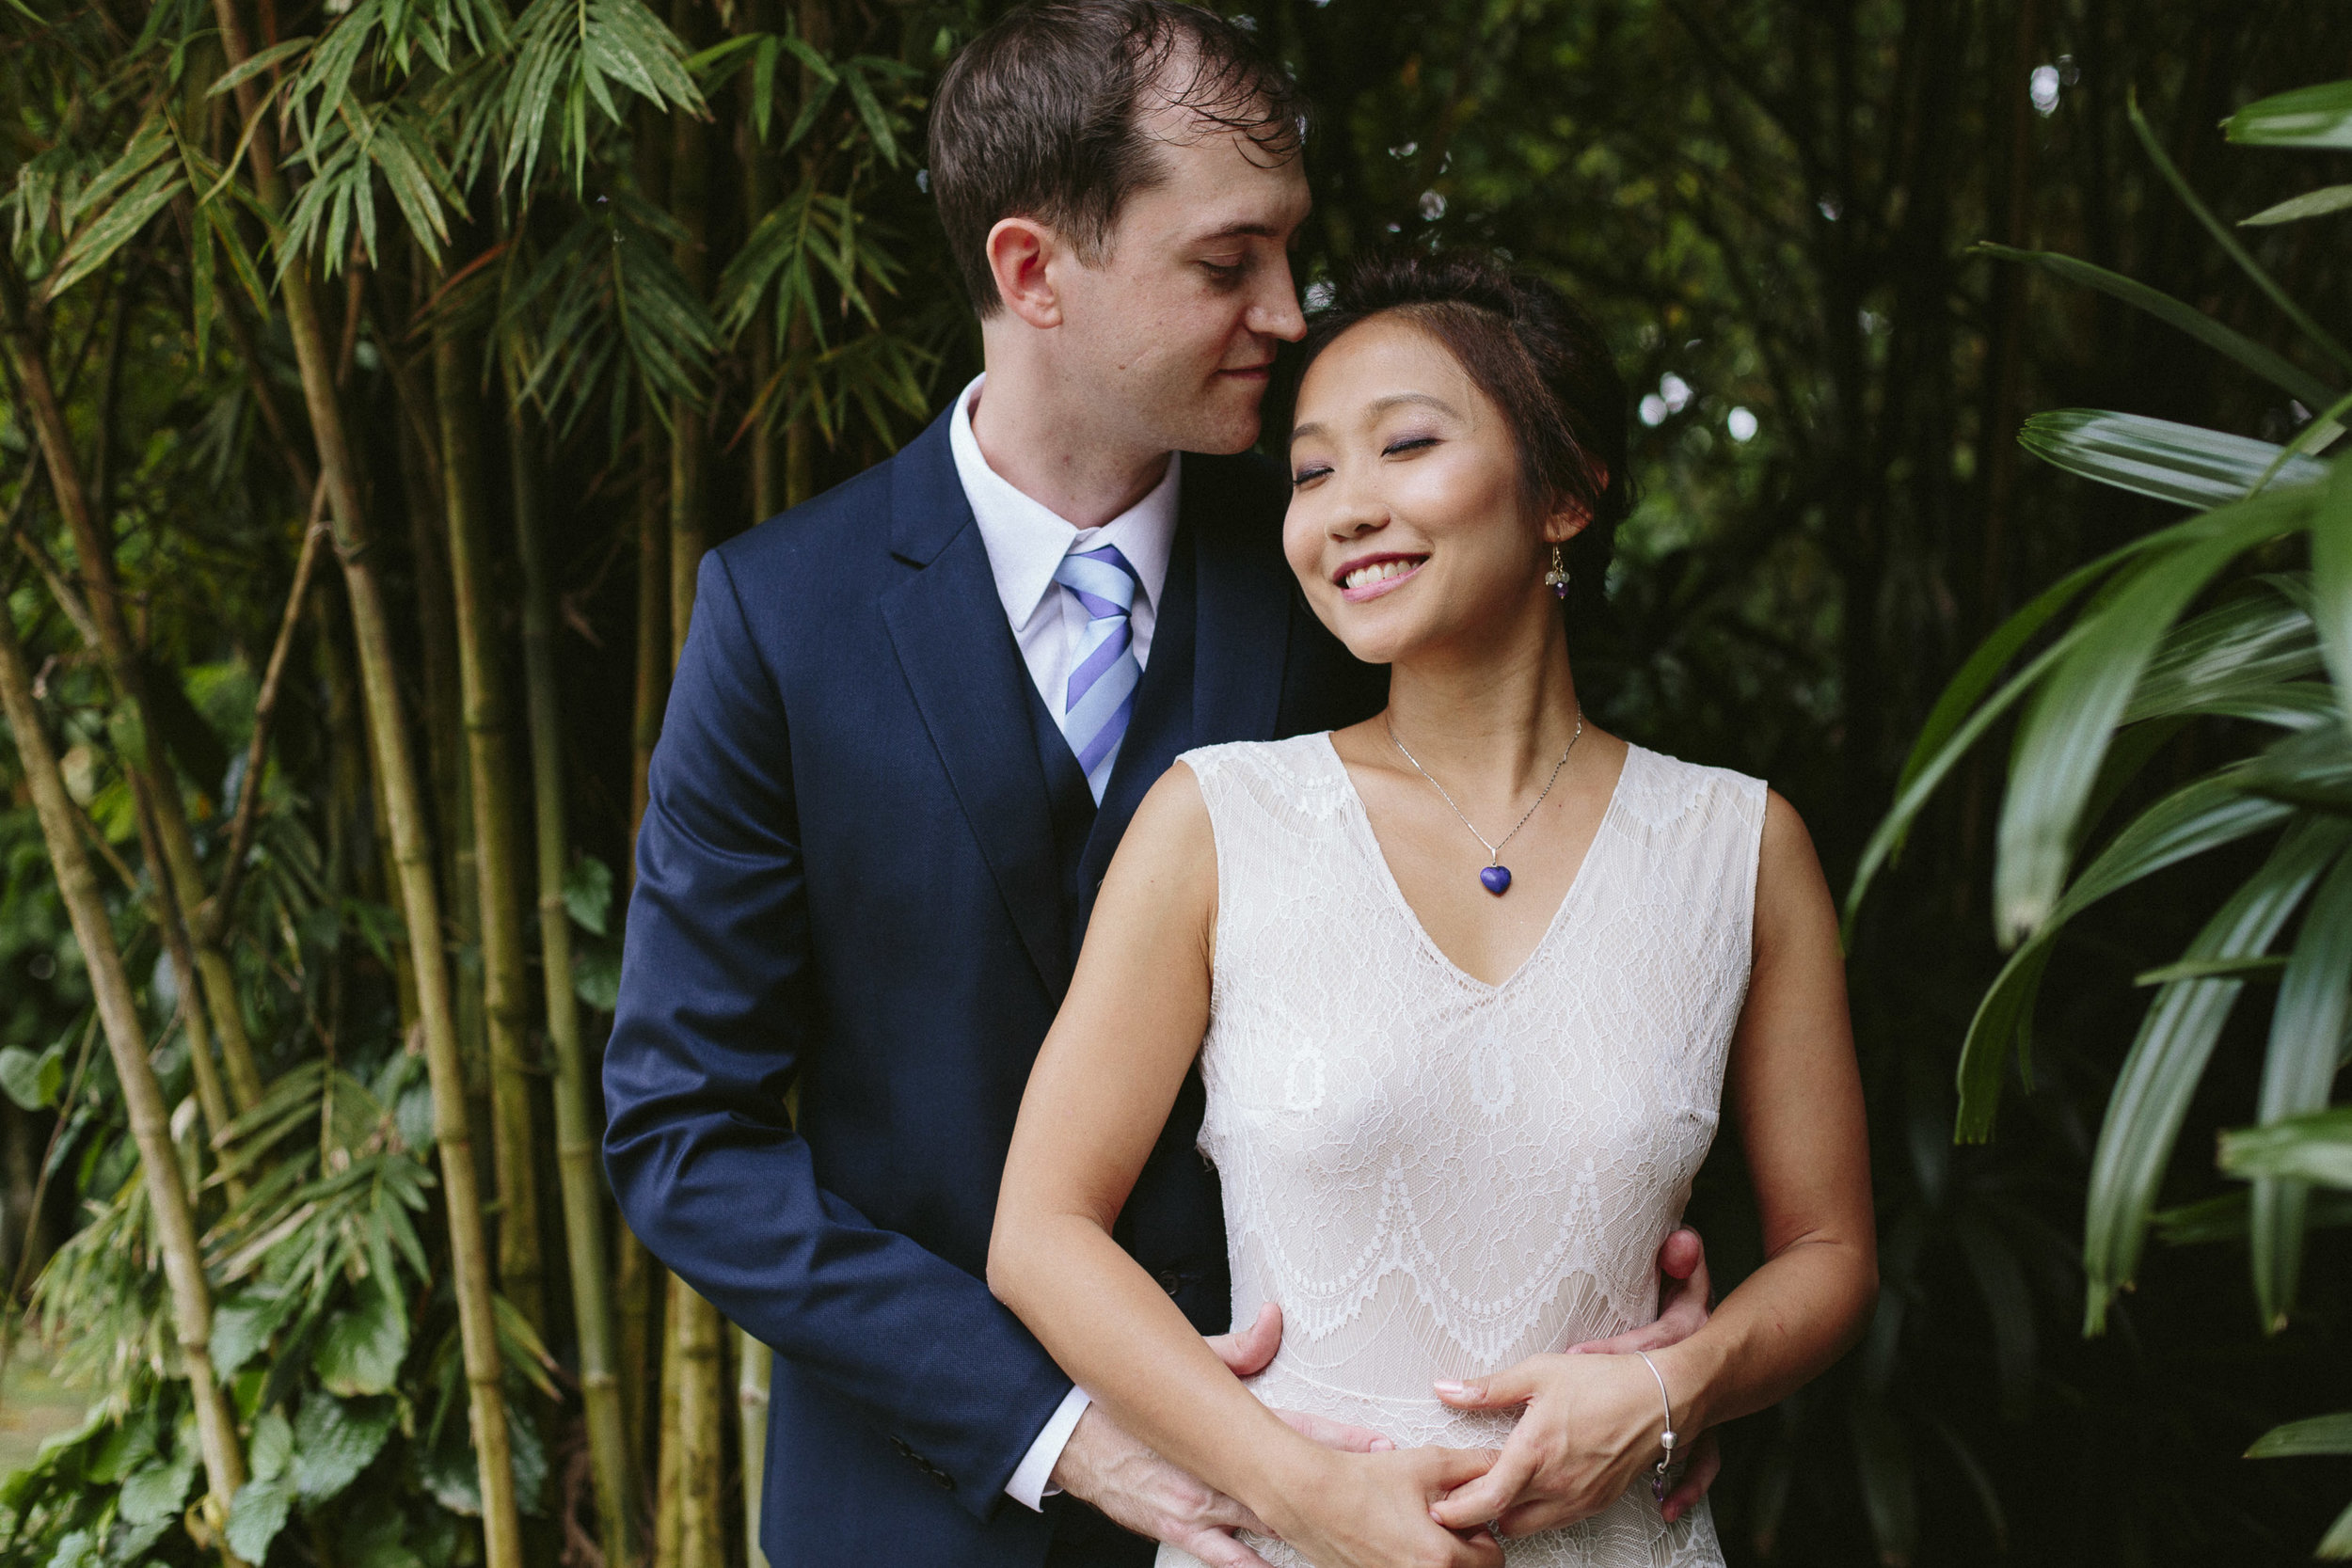 singapore-wedding-photographer-hiram-joyce-014.jpg